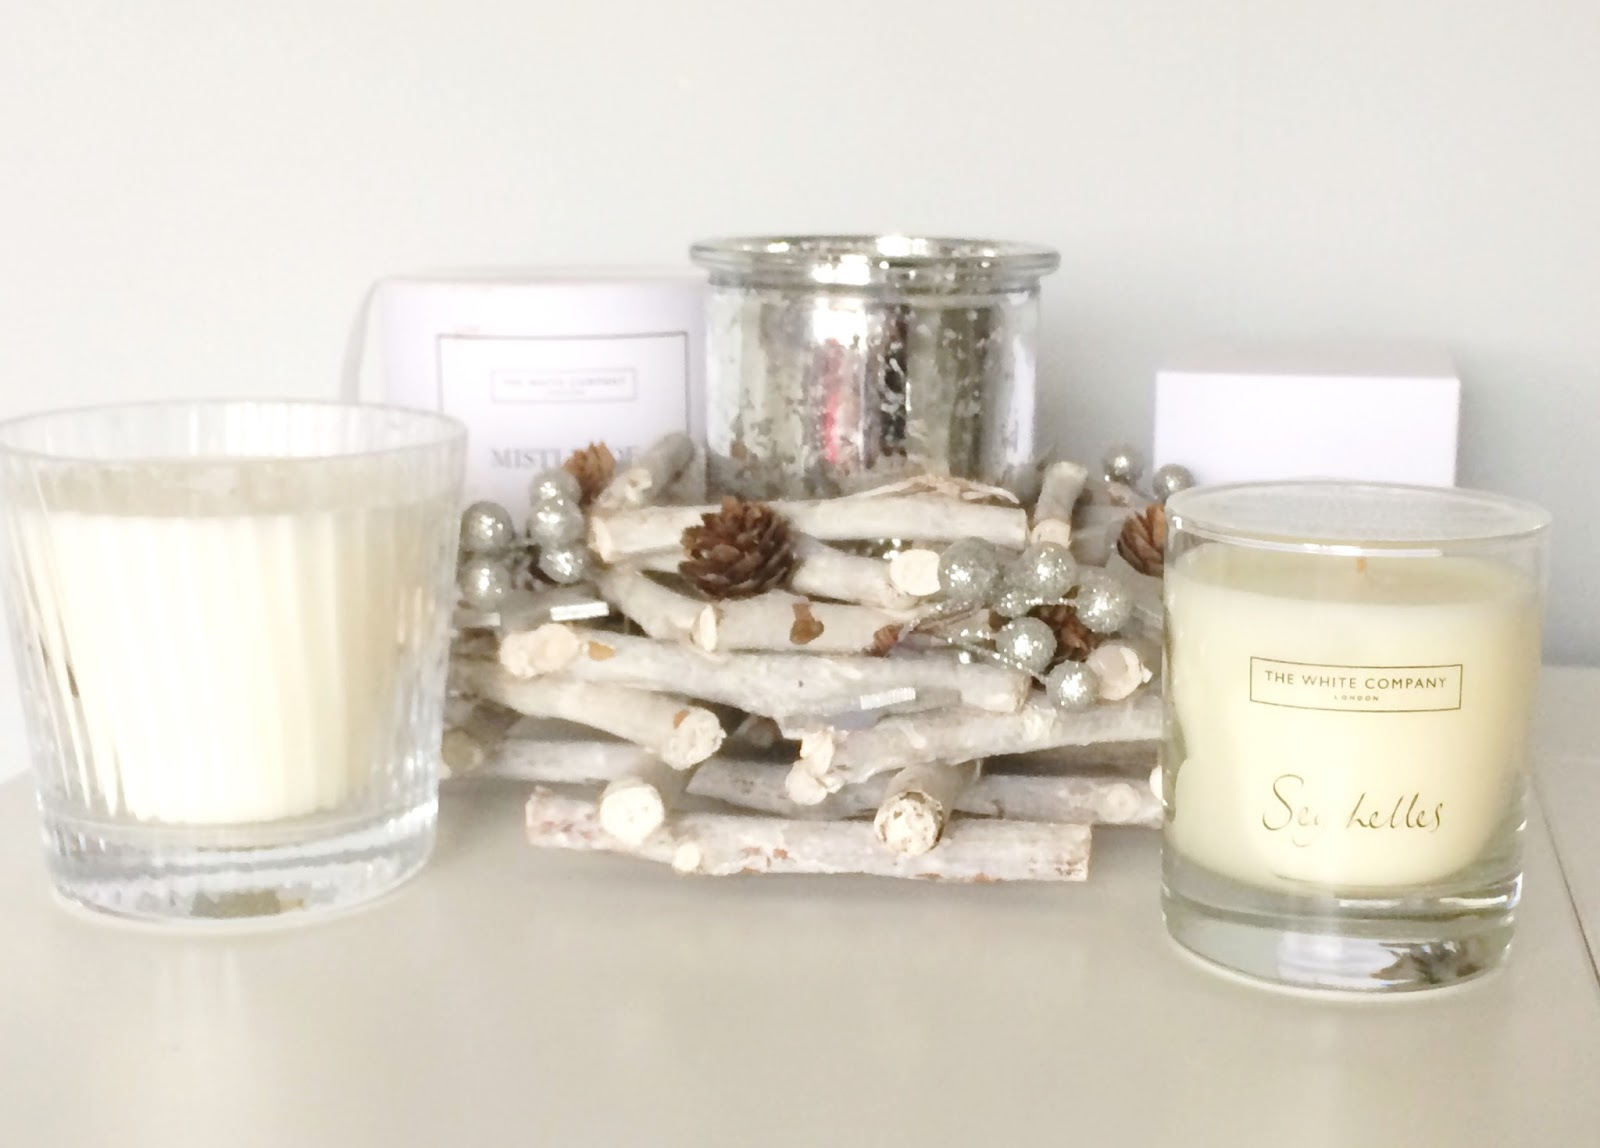 The White Company candles discount